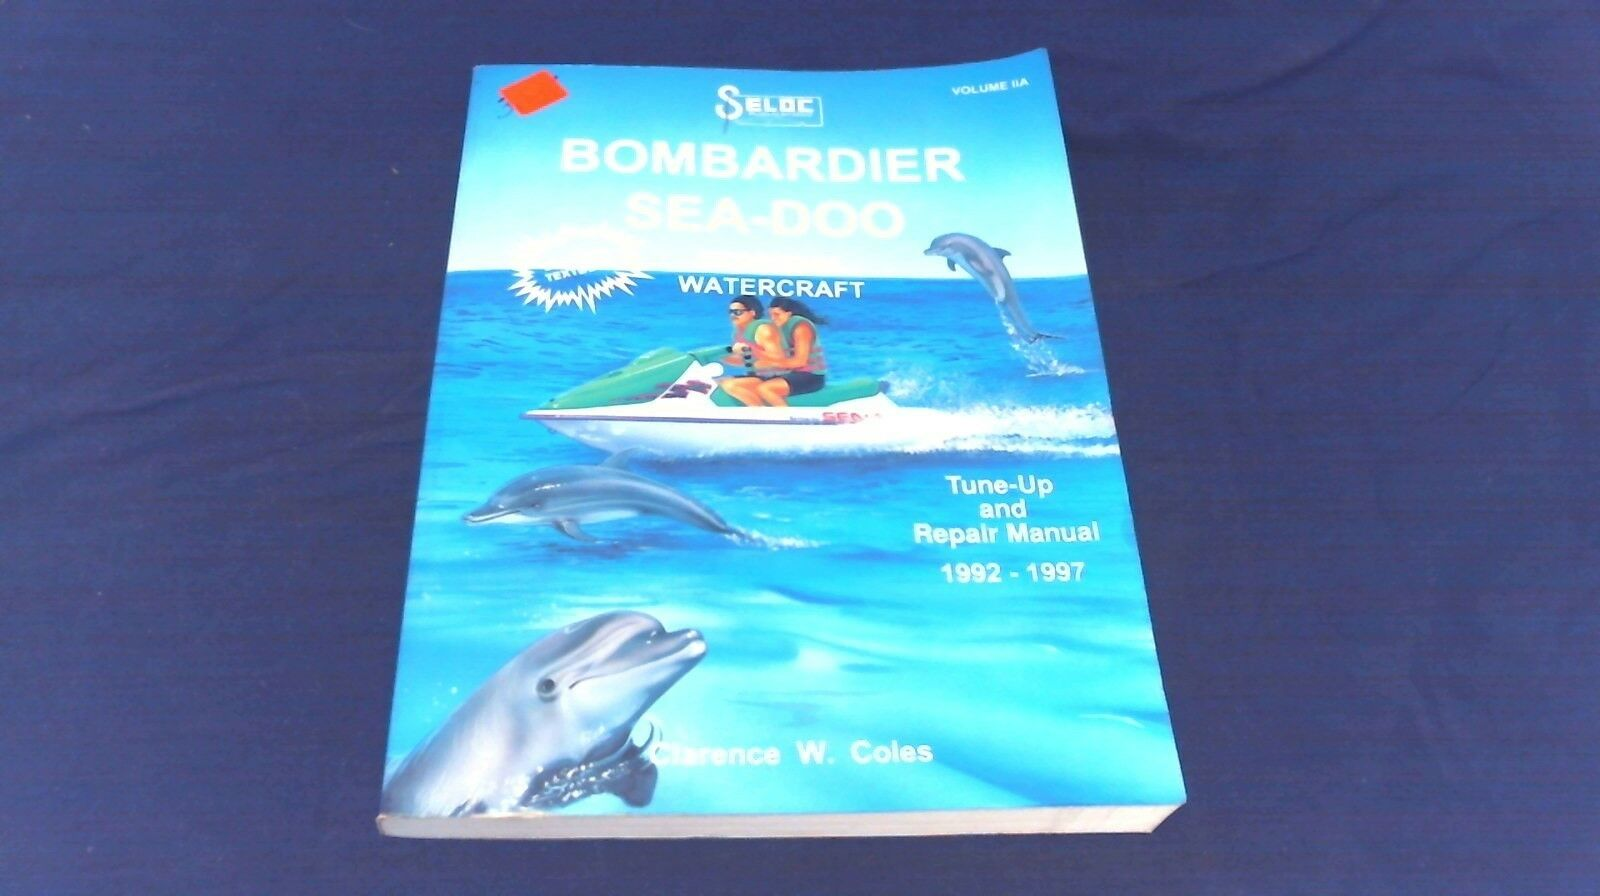 Seloc 9002 Service Manual for 1992-97 Sea-doo Bombardier Personal  Watercraft | eBay